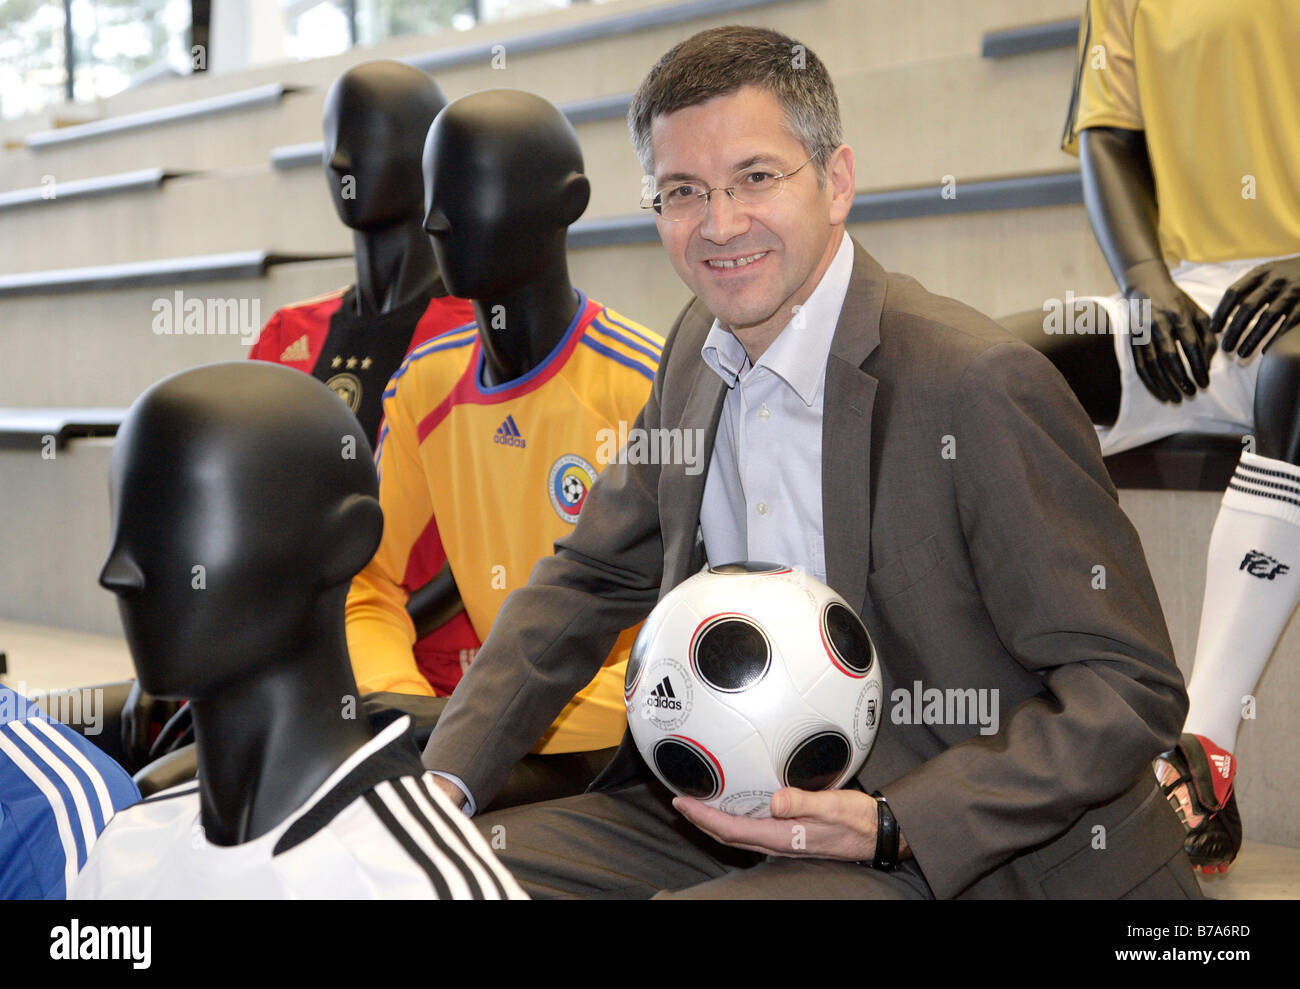 Herbert Hainer, chairman of the Adidas AG, prior to the press conference on financial statements on the 05.03.2008 - Stock Image